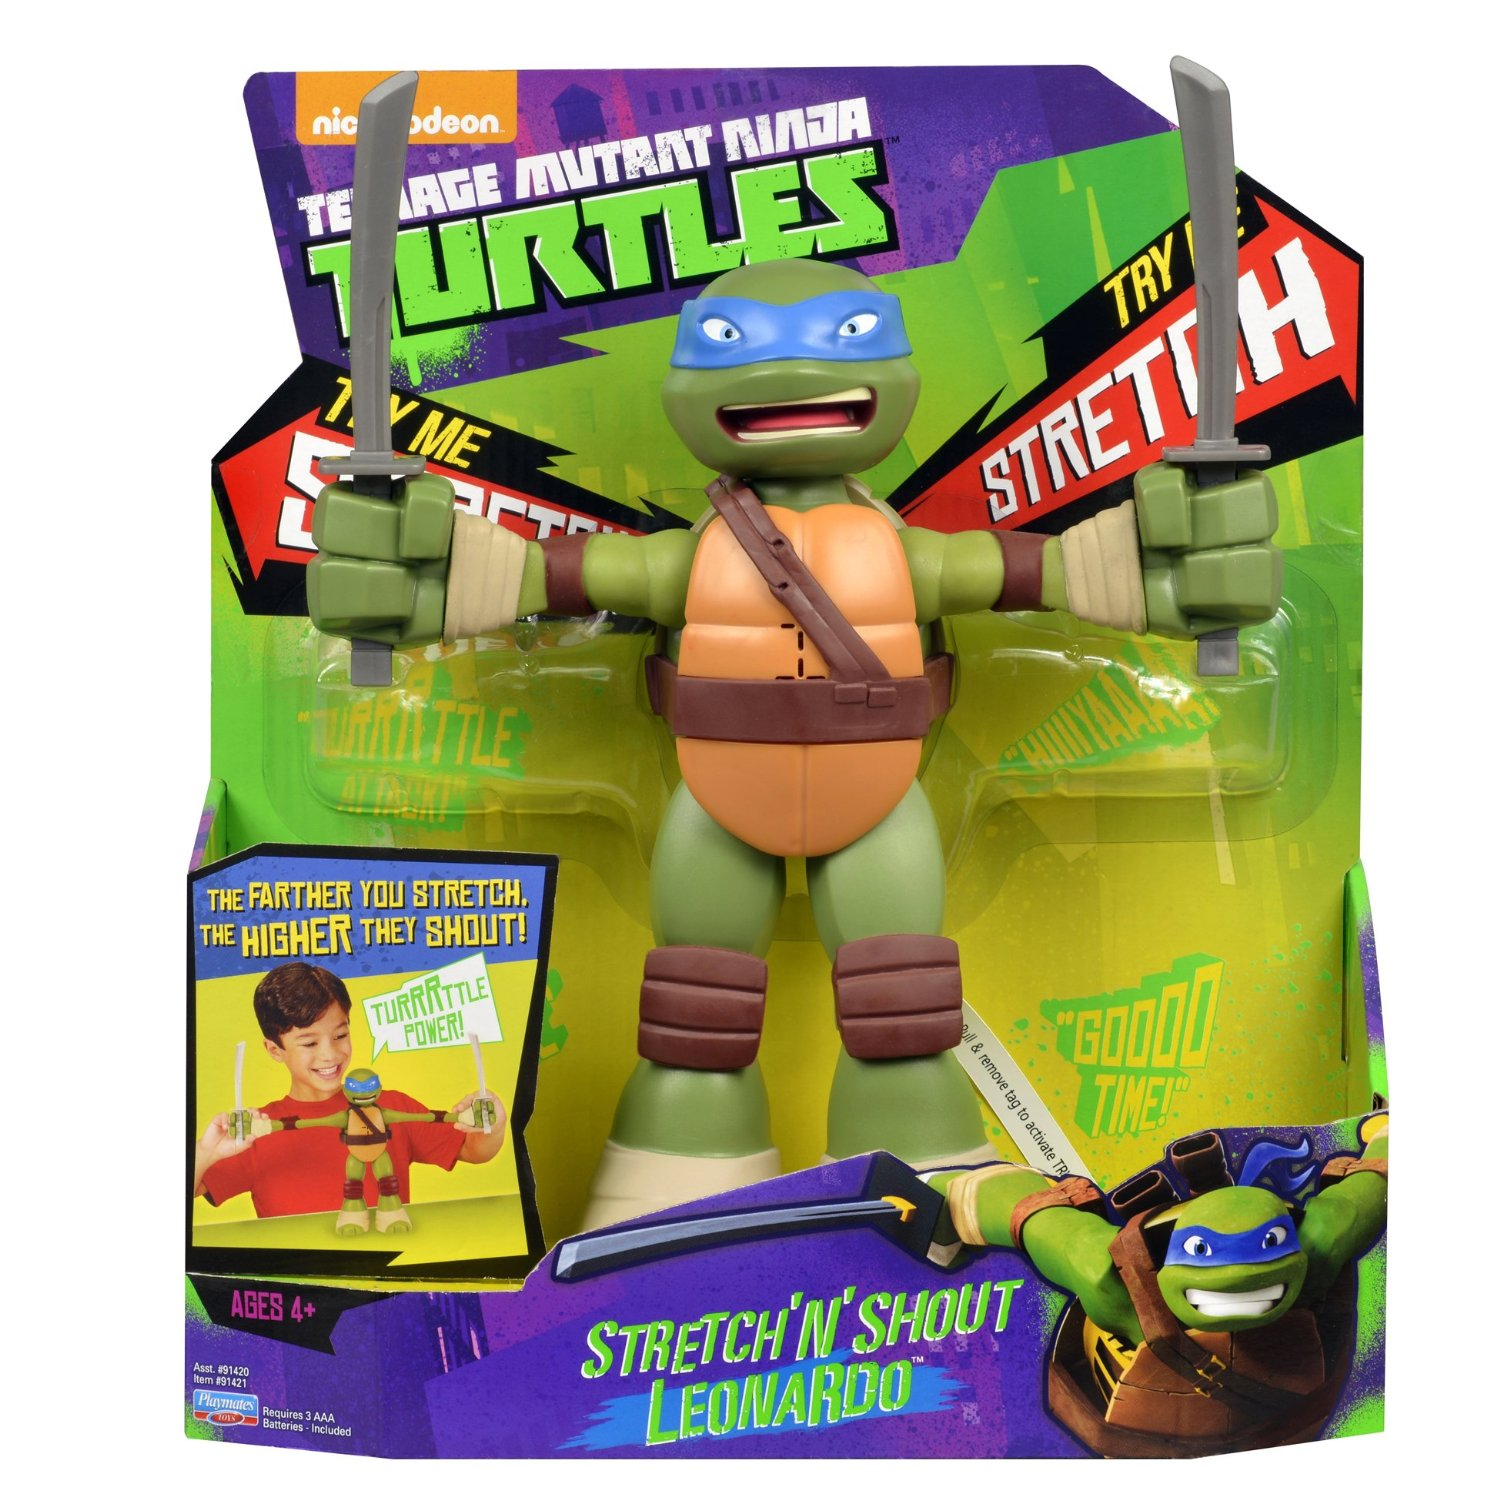 What Toys To Buy For Kids This Christmas